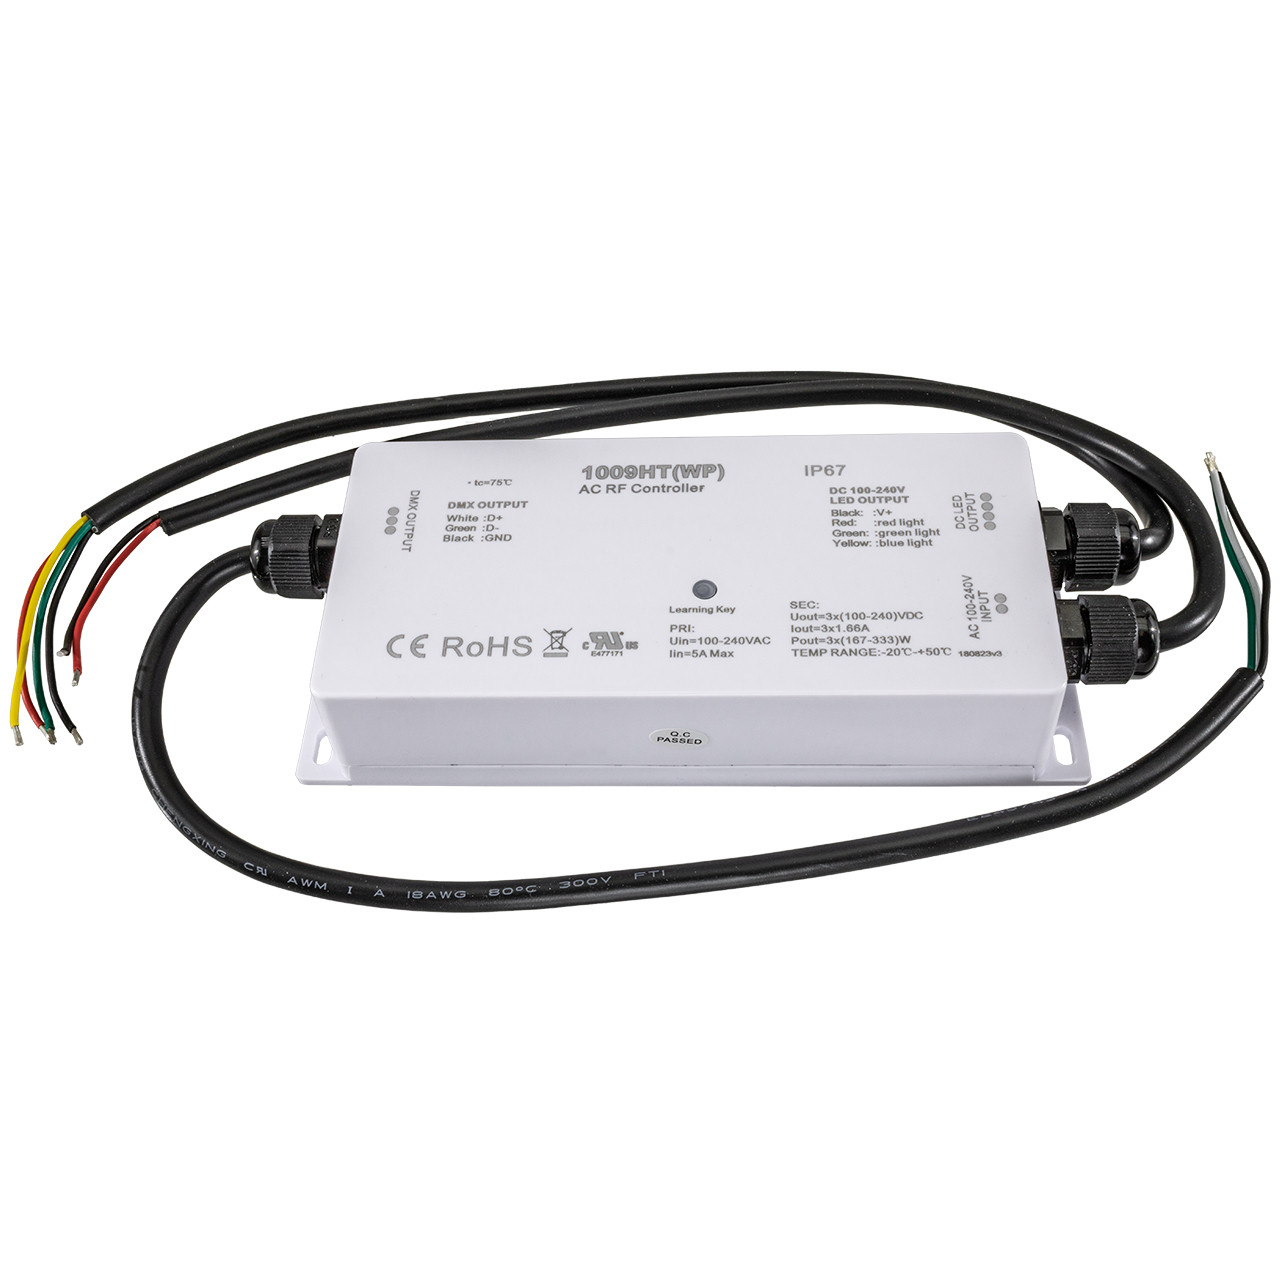 Led Strip Light Dmx Controller Dmx Rgb Rf Led Strip Light Weatherproof Controller 120 Volt